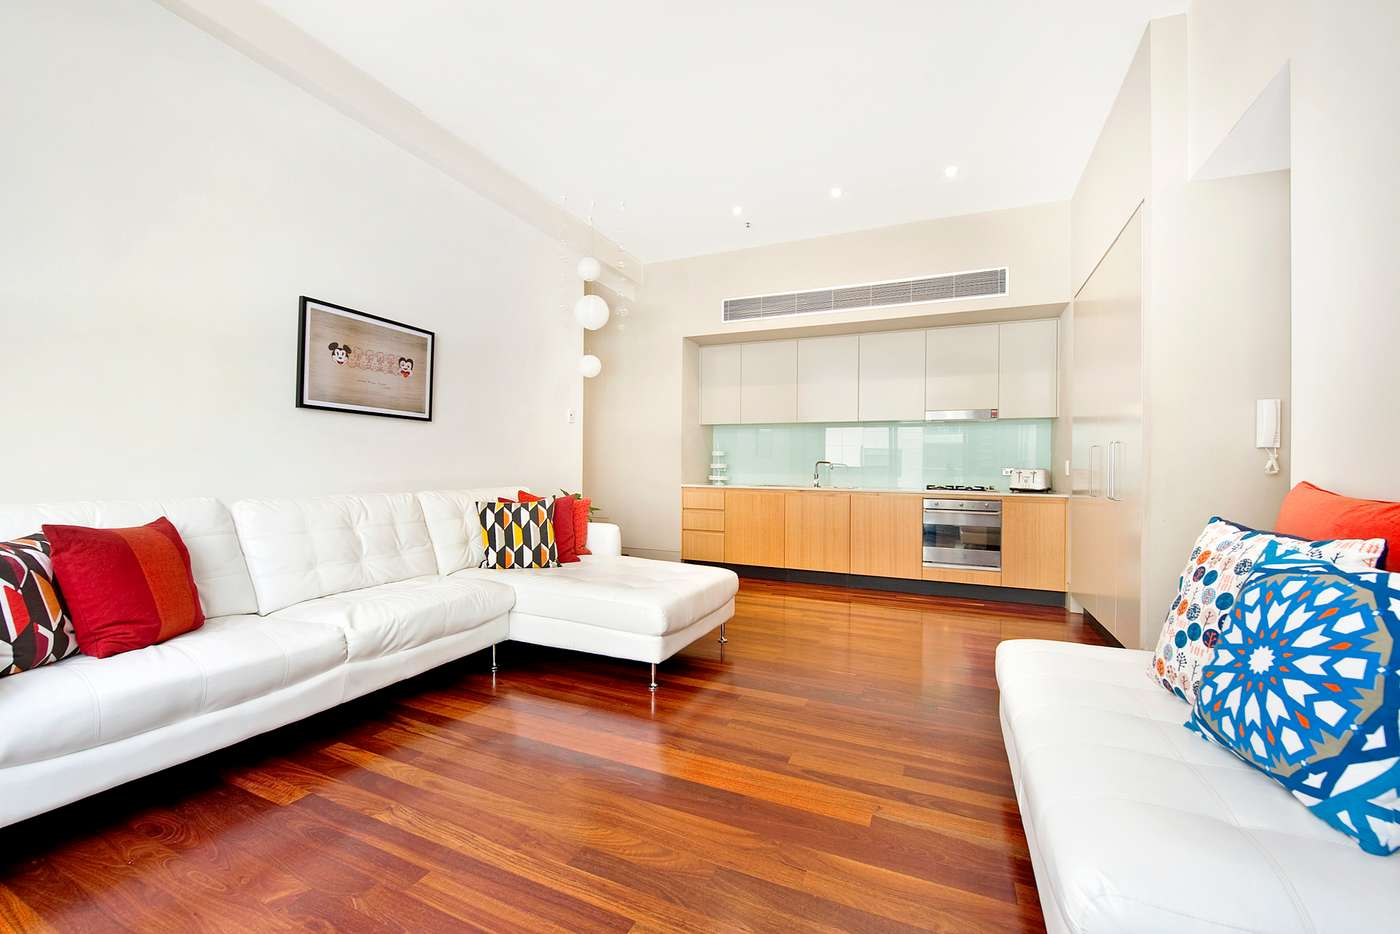 Main view of Homely apartment listing, 515/2 York Street, Sydney NSW 2000